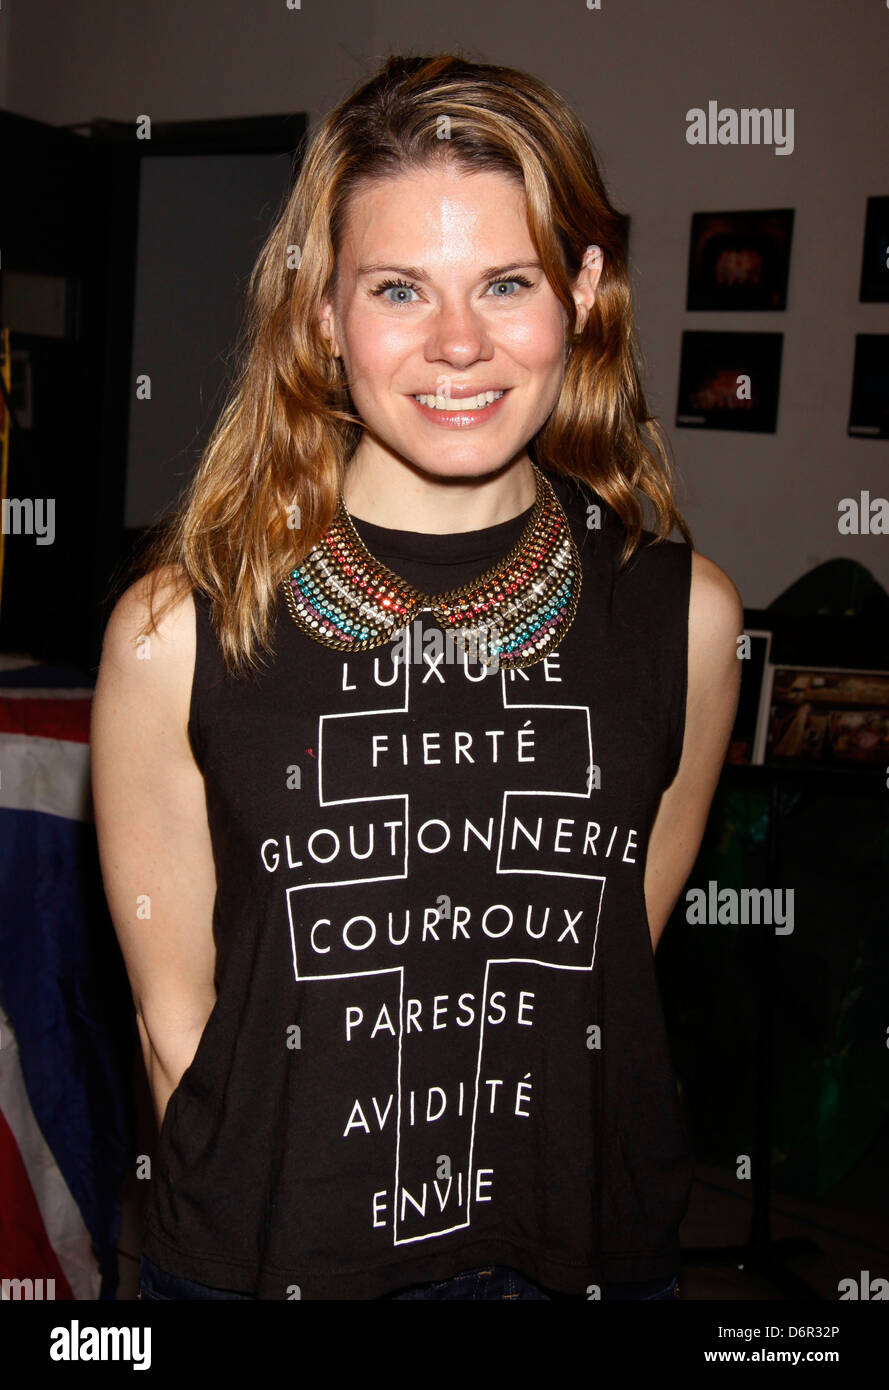 Celia Keenan-Bolger Meet and greet with the cast and creative team of the Broadway show 'Peter and the Starcatcher' - Stock Image